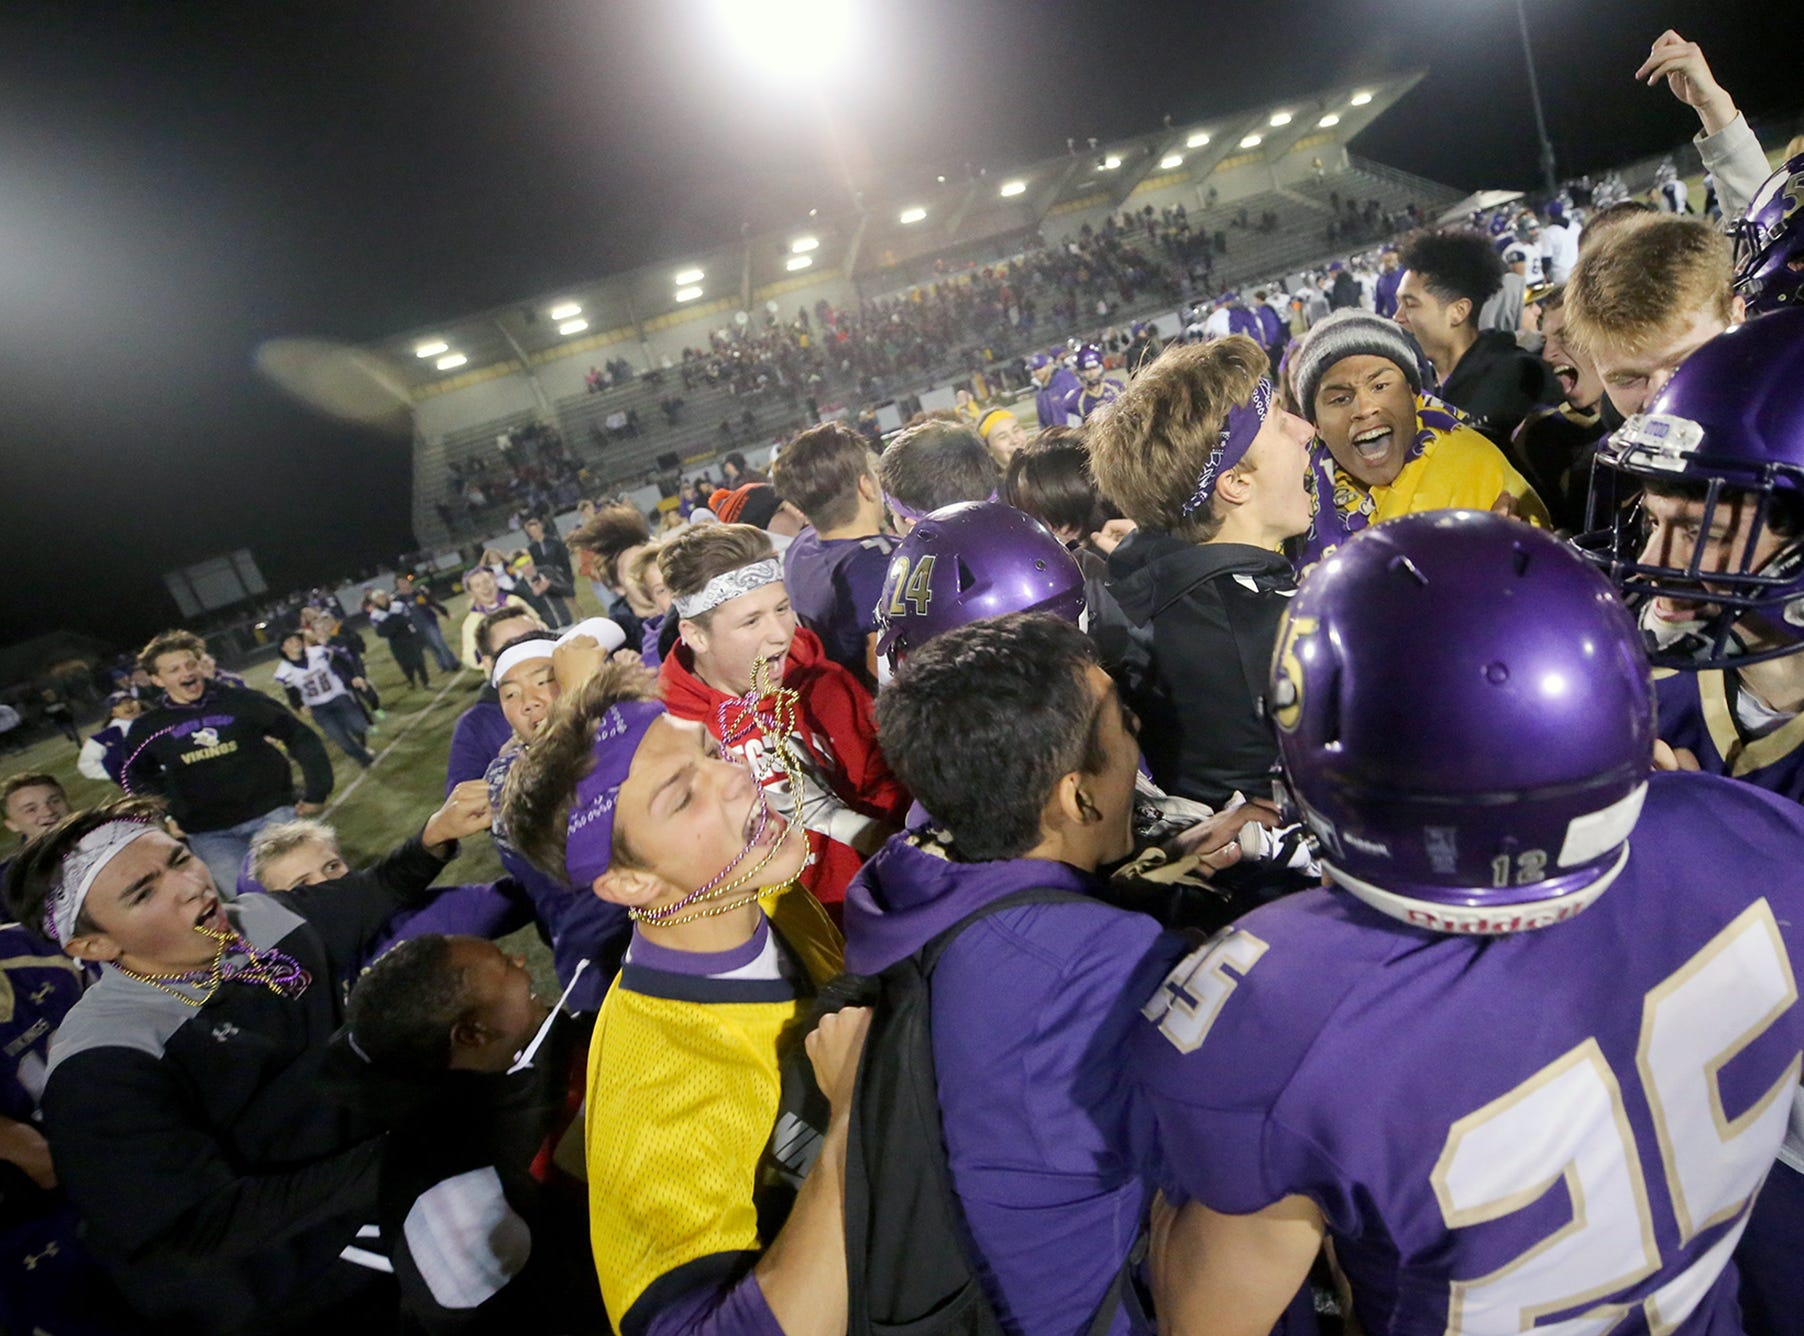 The North Kitsap Vikings defeated River ridge in a West Central District playoff game at North Kitsap on Friday, November 2, 2018. North Kitsap  player Isaiah Kahana stiff arms River RidgeÕs Isaiah Parker.Players and fans celebrate the victory.